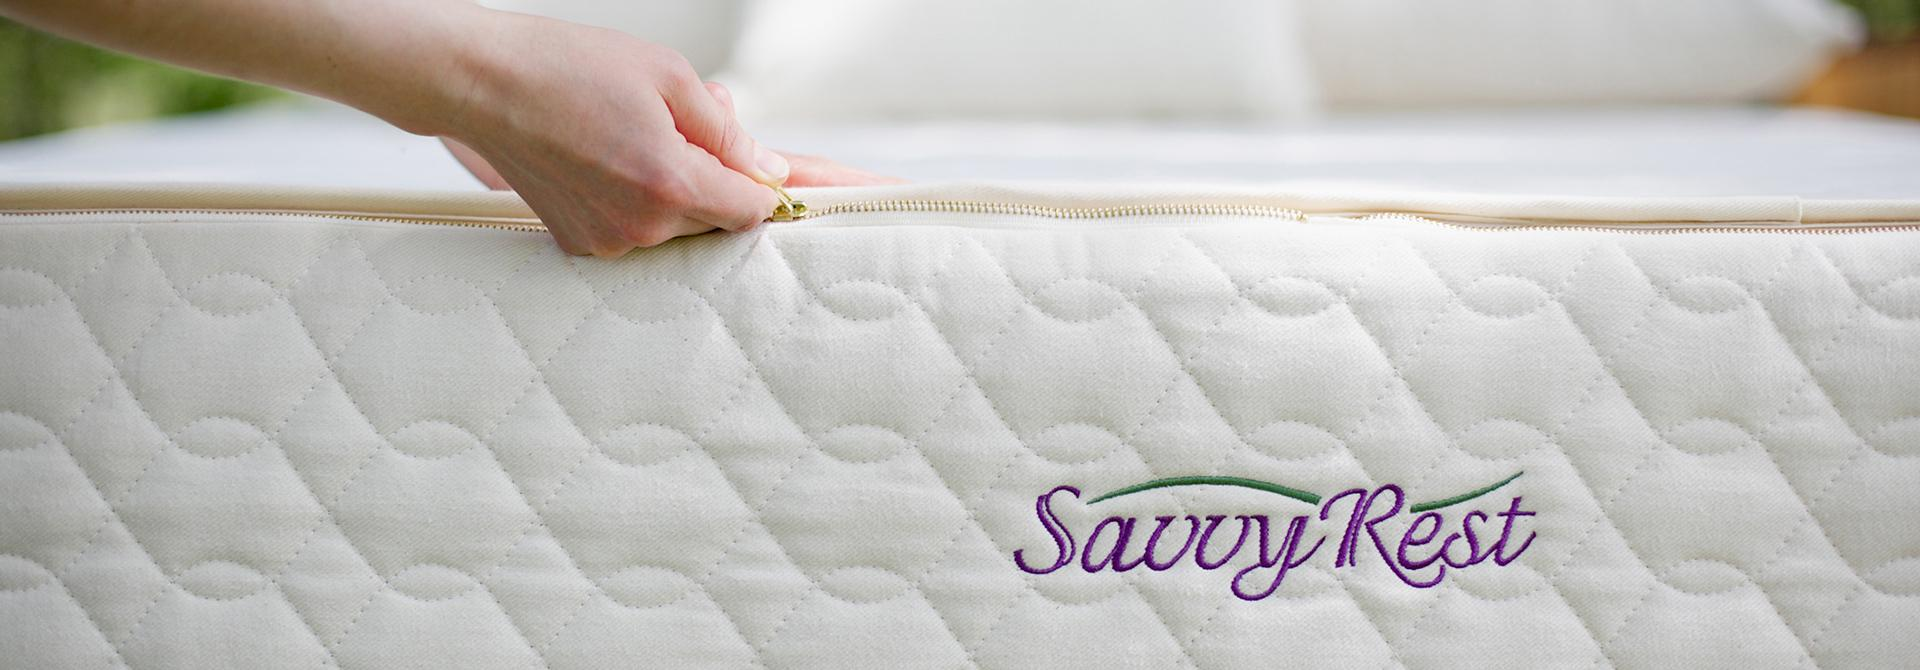 Organic Mattresses with Natural Latex (Dunlop & Talalay) | Savvy Rest